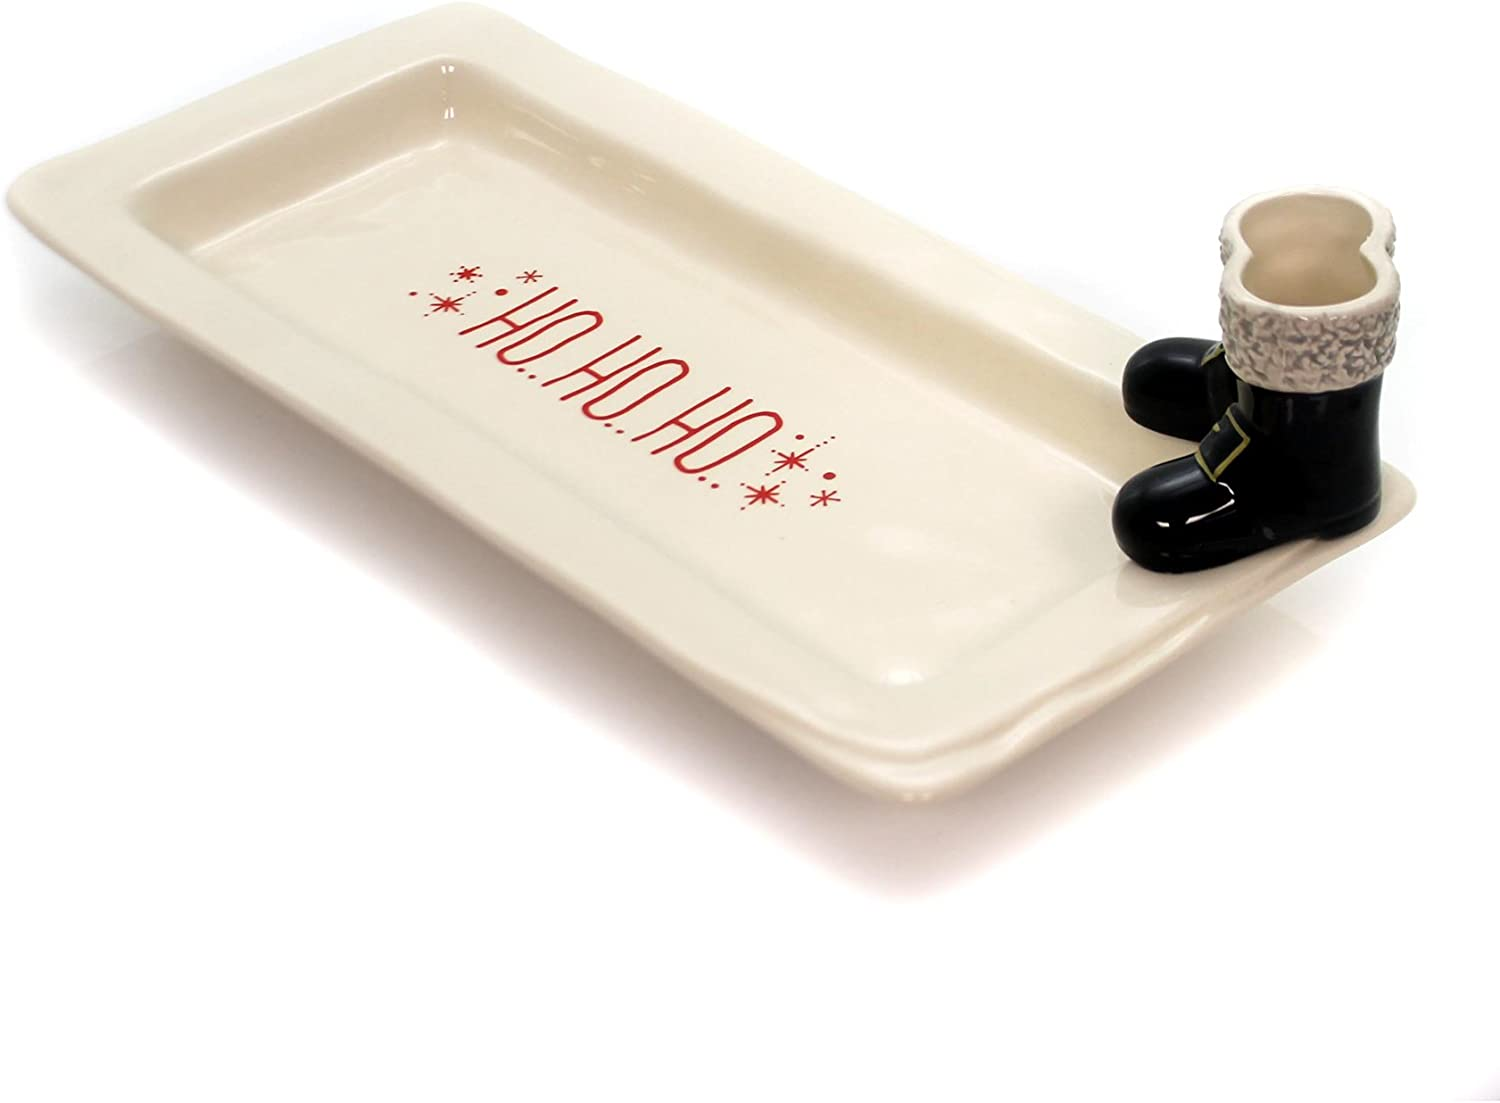 Details about  /Christmas platter tray red stripe or green dot 6x15 MSCRSRP//1612 /& MSCLDRP//1613